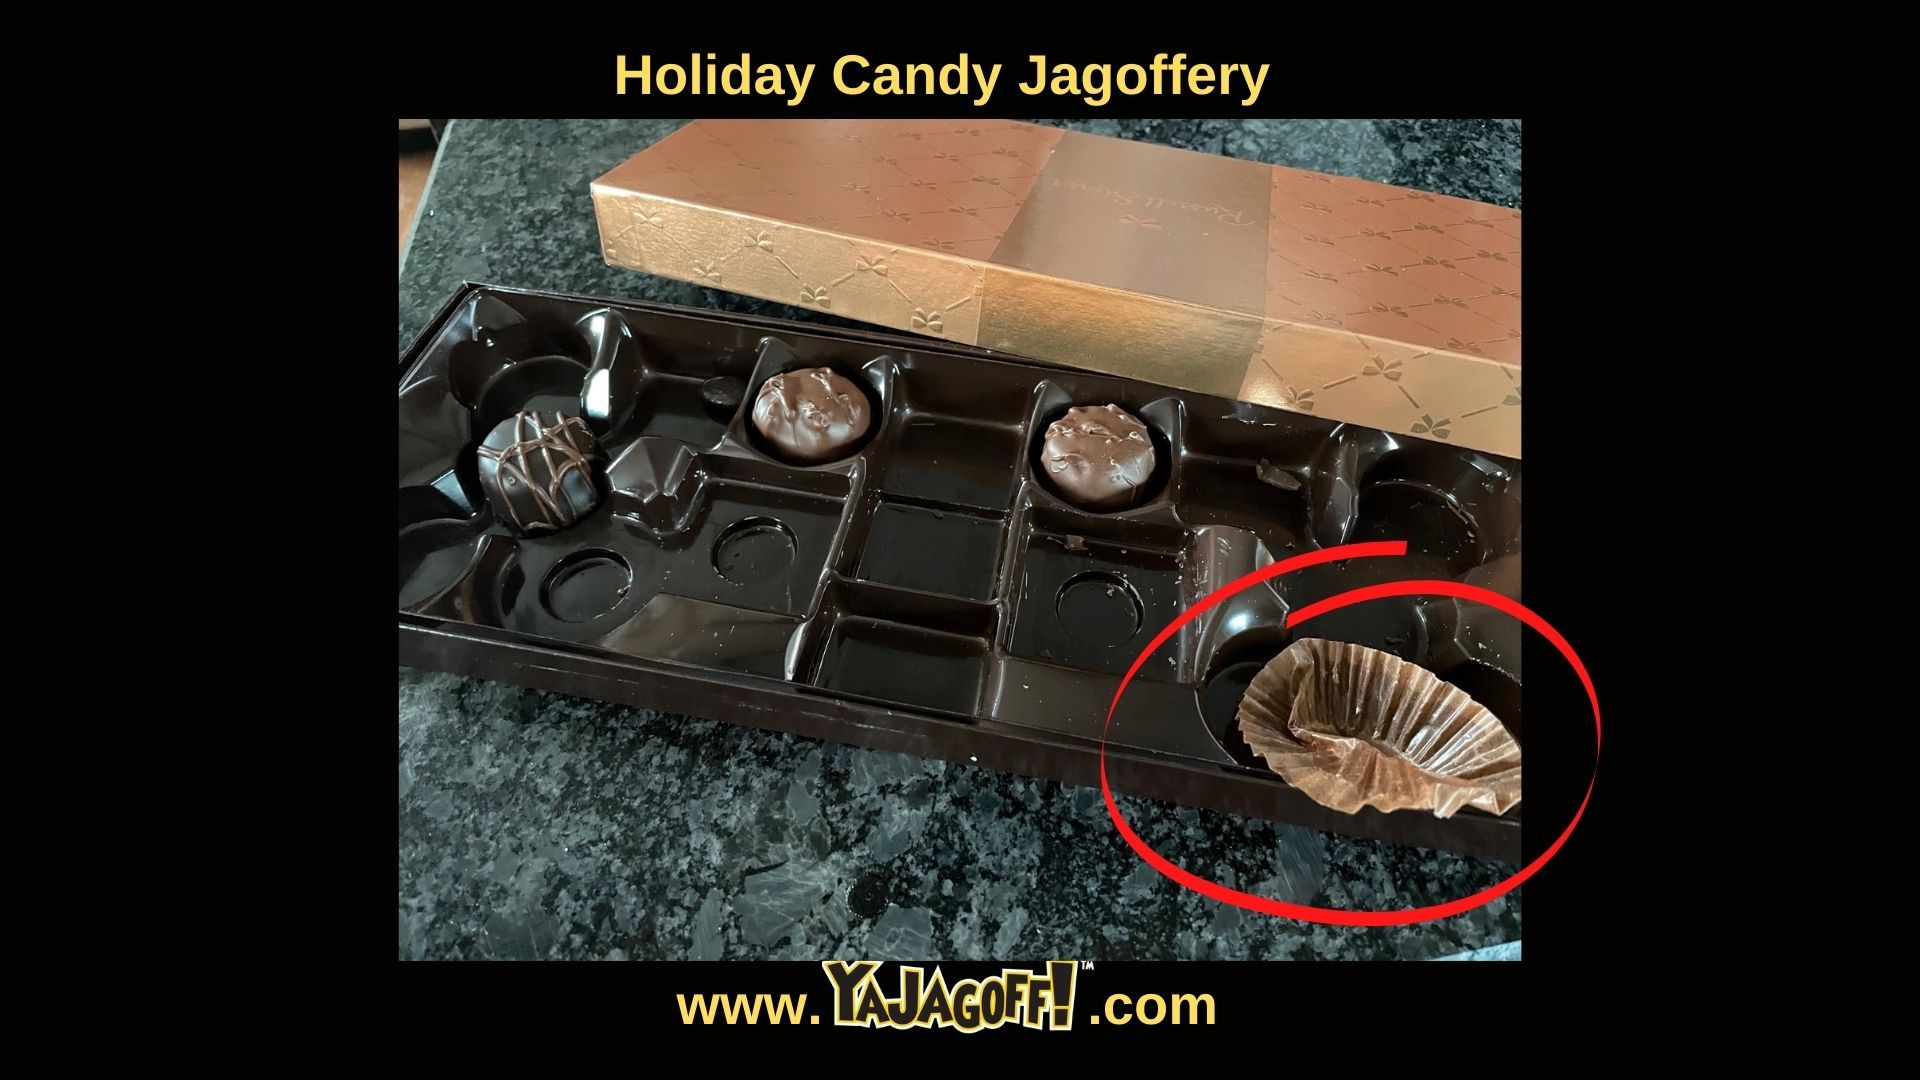 YaJagoff Blog about Holiday Candy